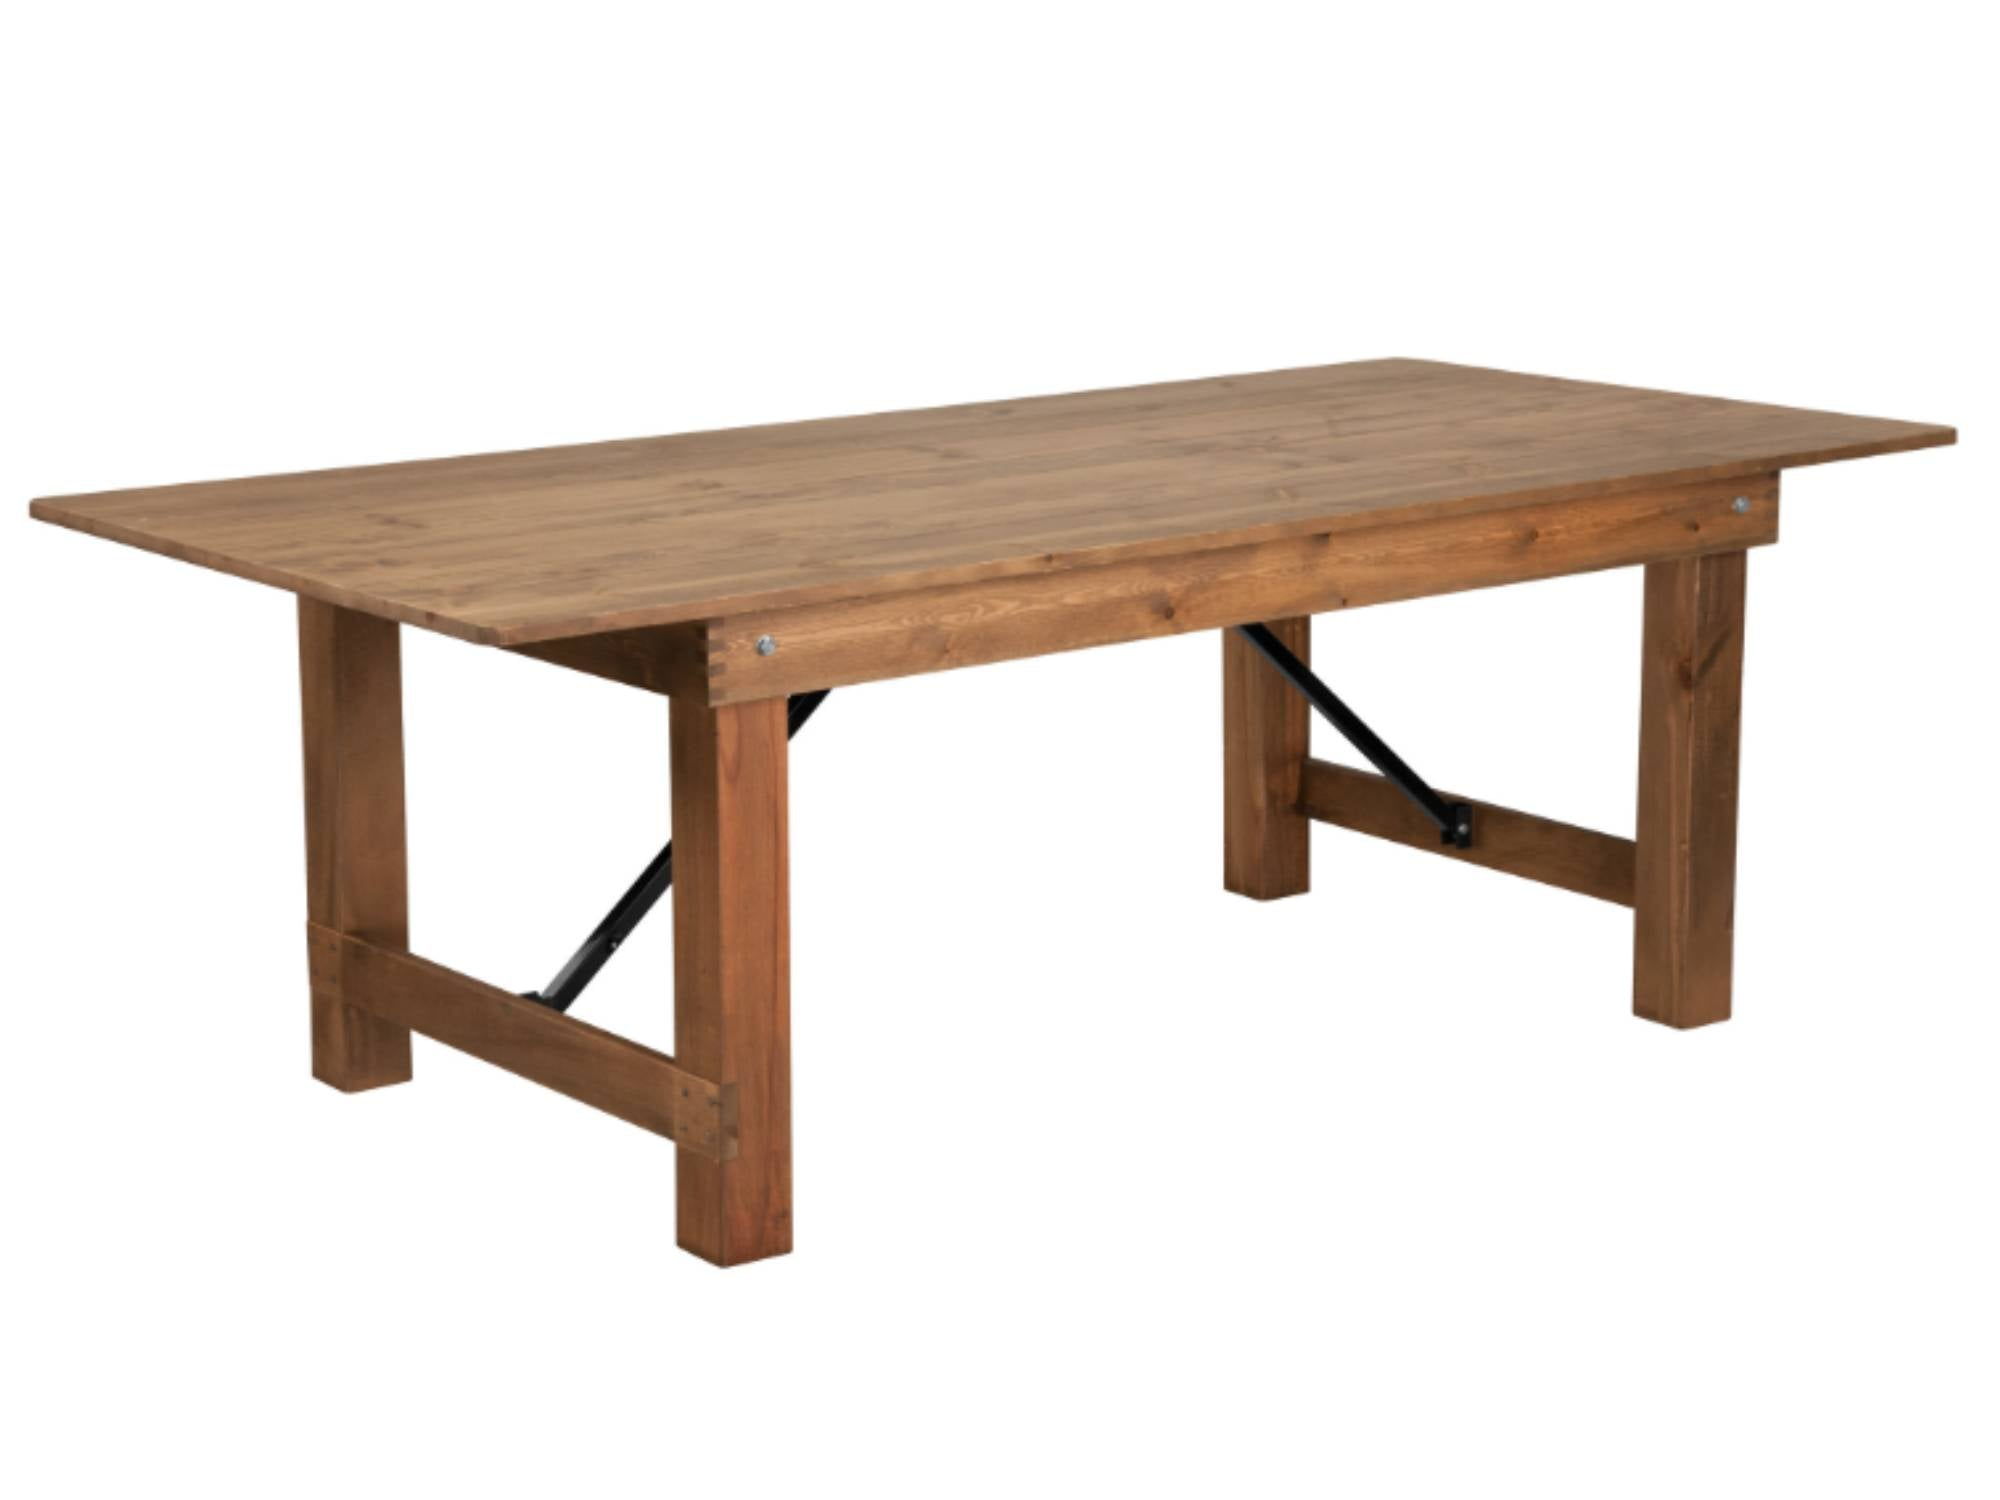 PINE WOOD FARM TABLE